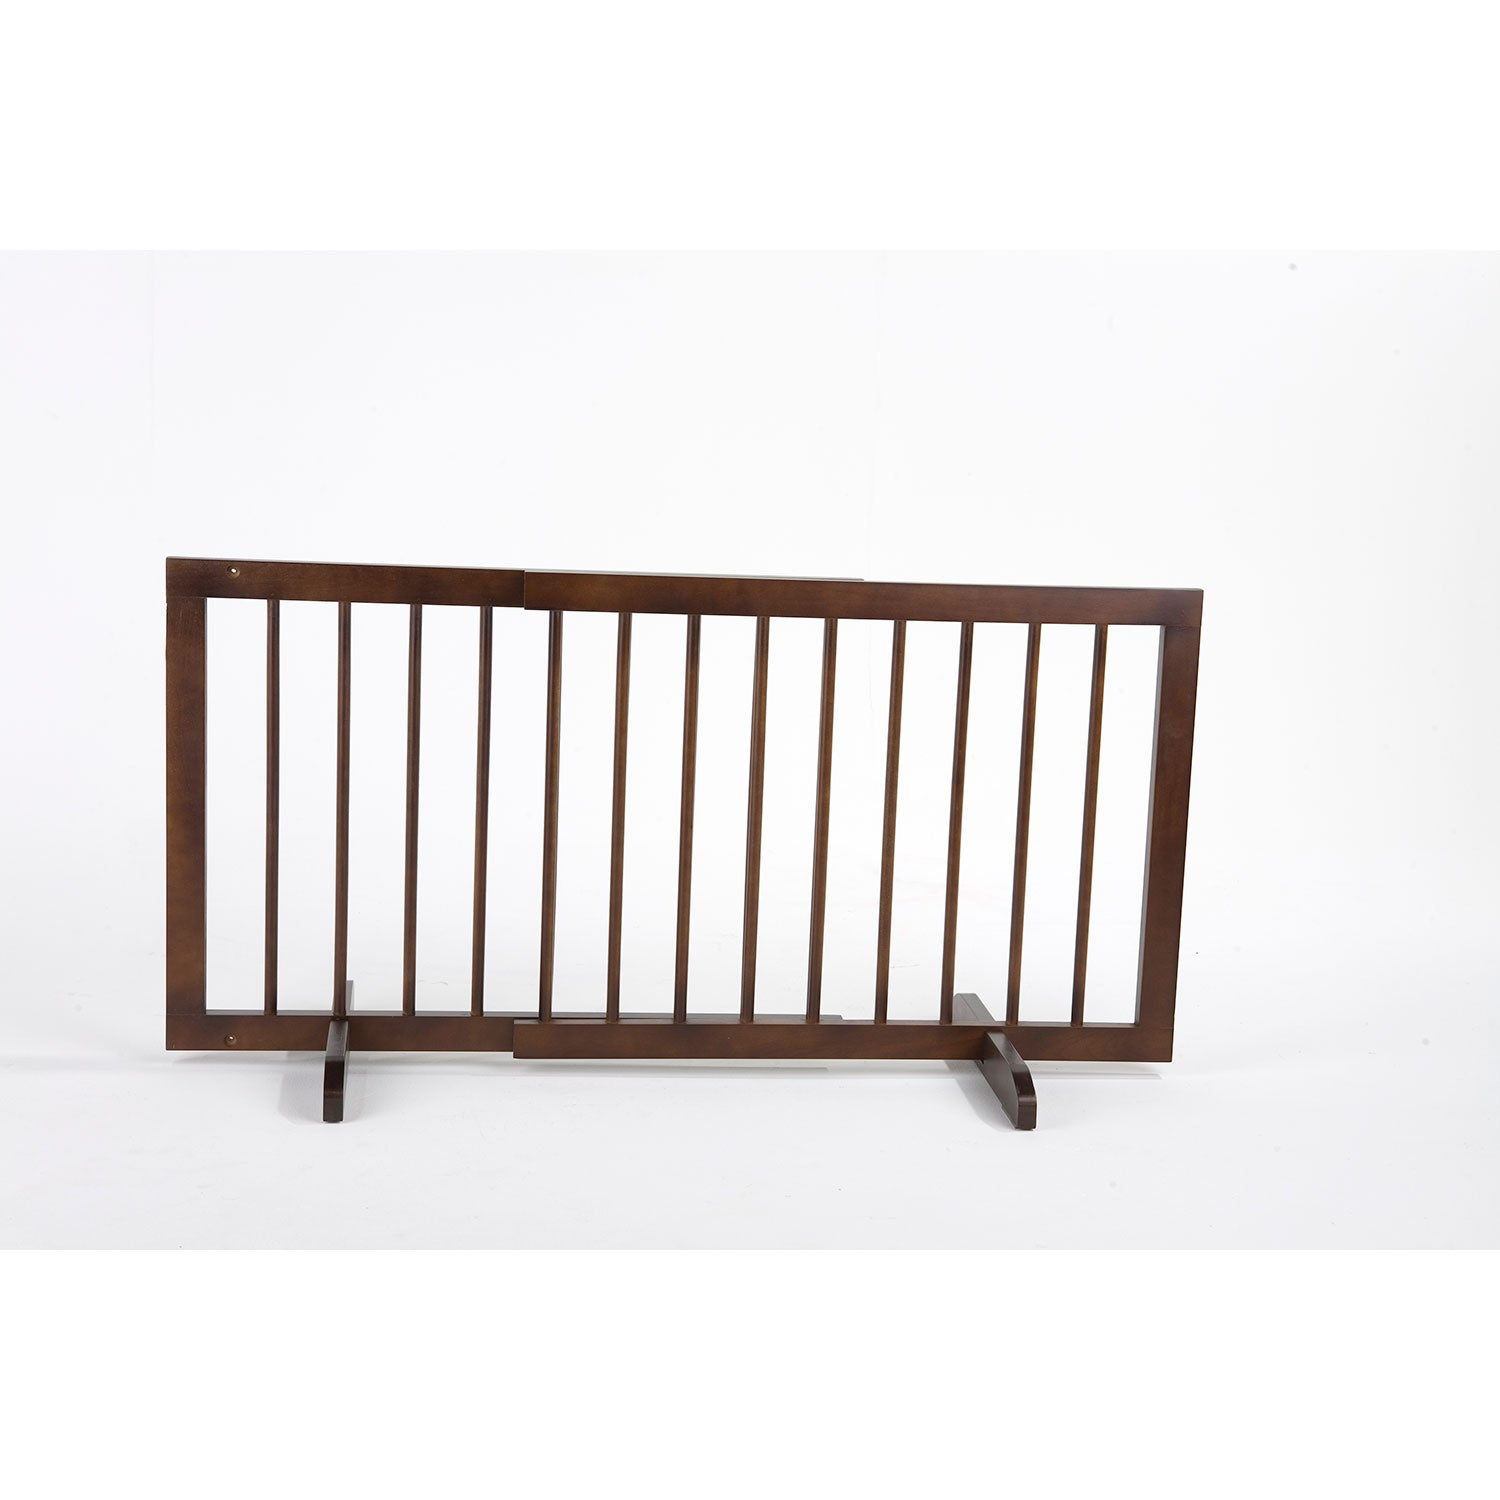 "Cardinal Gates Step Over Free Standing Pet Gate Walnut 28"" - 51.75"" x 2"" x 20"" Dog Gates - London the Local"